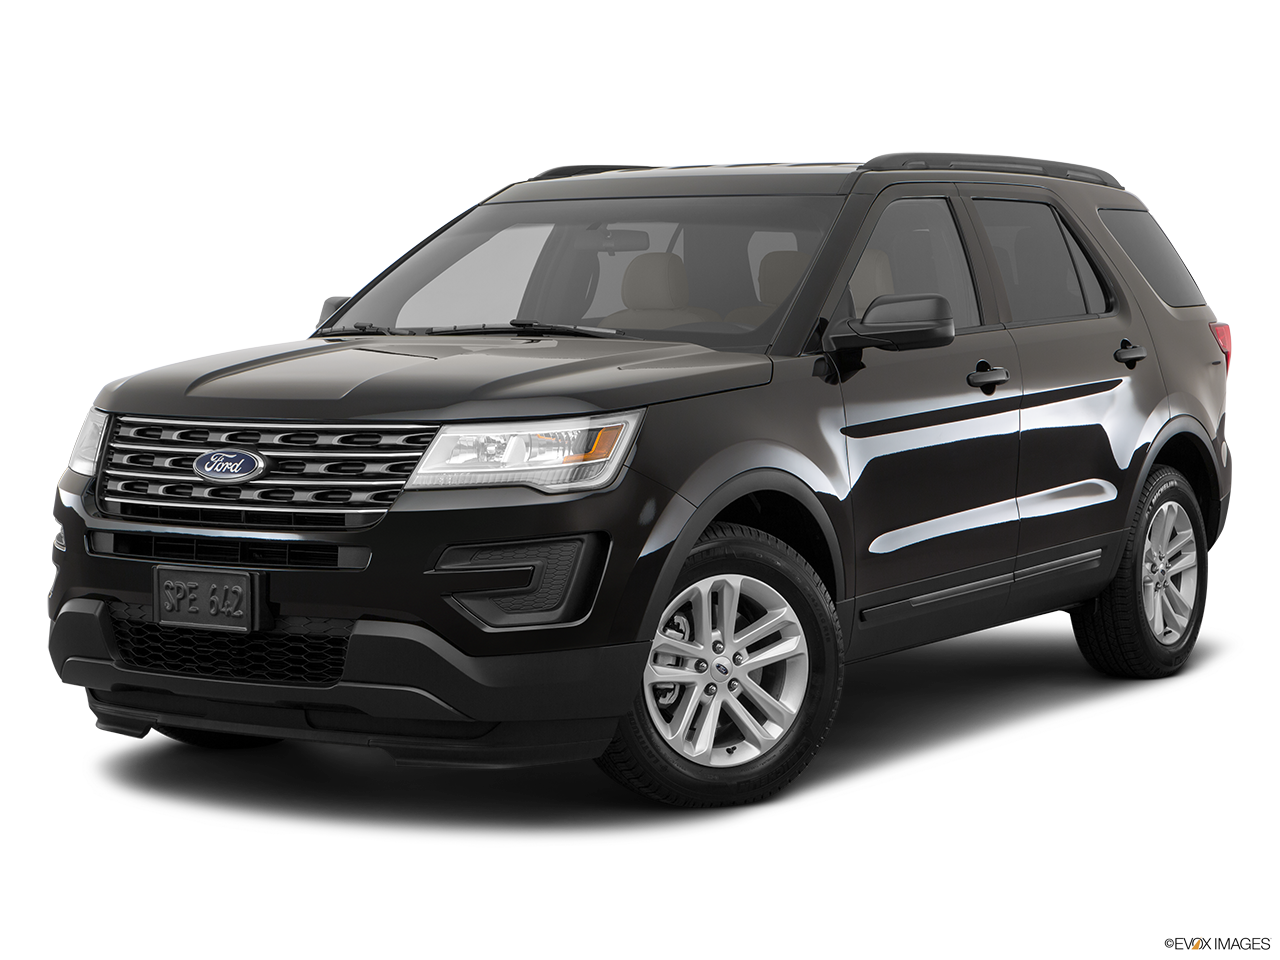 Test Drive A 2017 Ford Explorer at Mossy Ford in San Diego